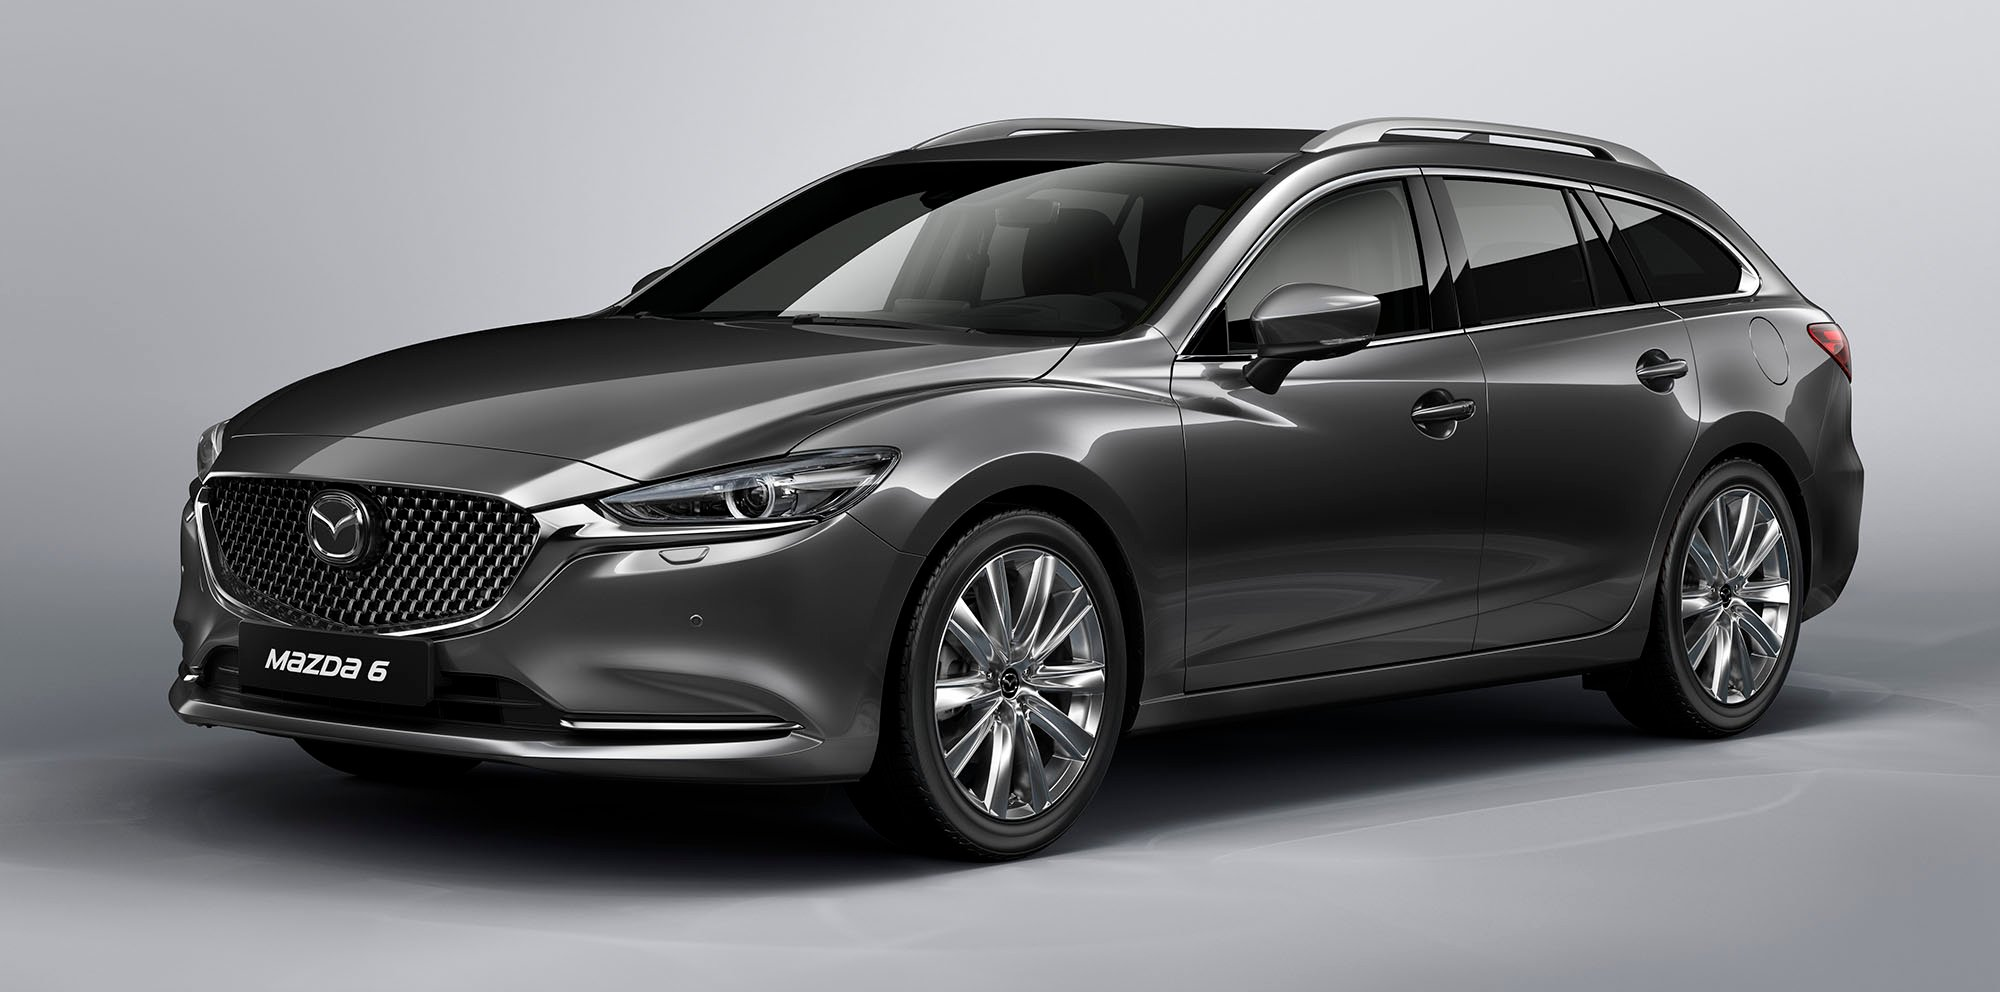 2018 mazda 6 wagon facelift unveiled ahead of geneva photos for 2018 mazda 6 exterior